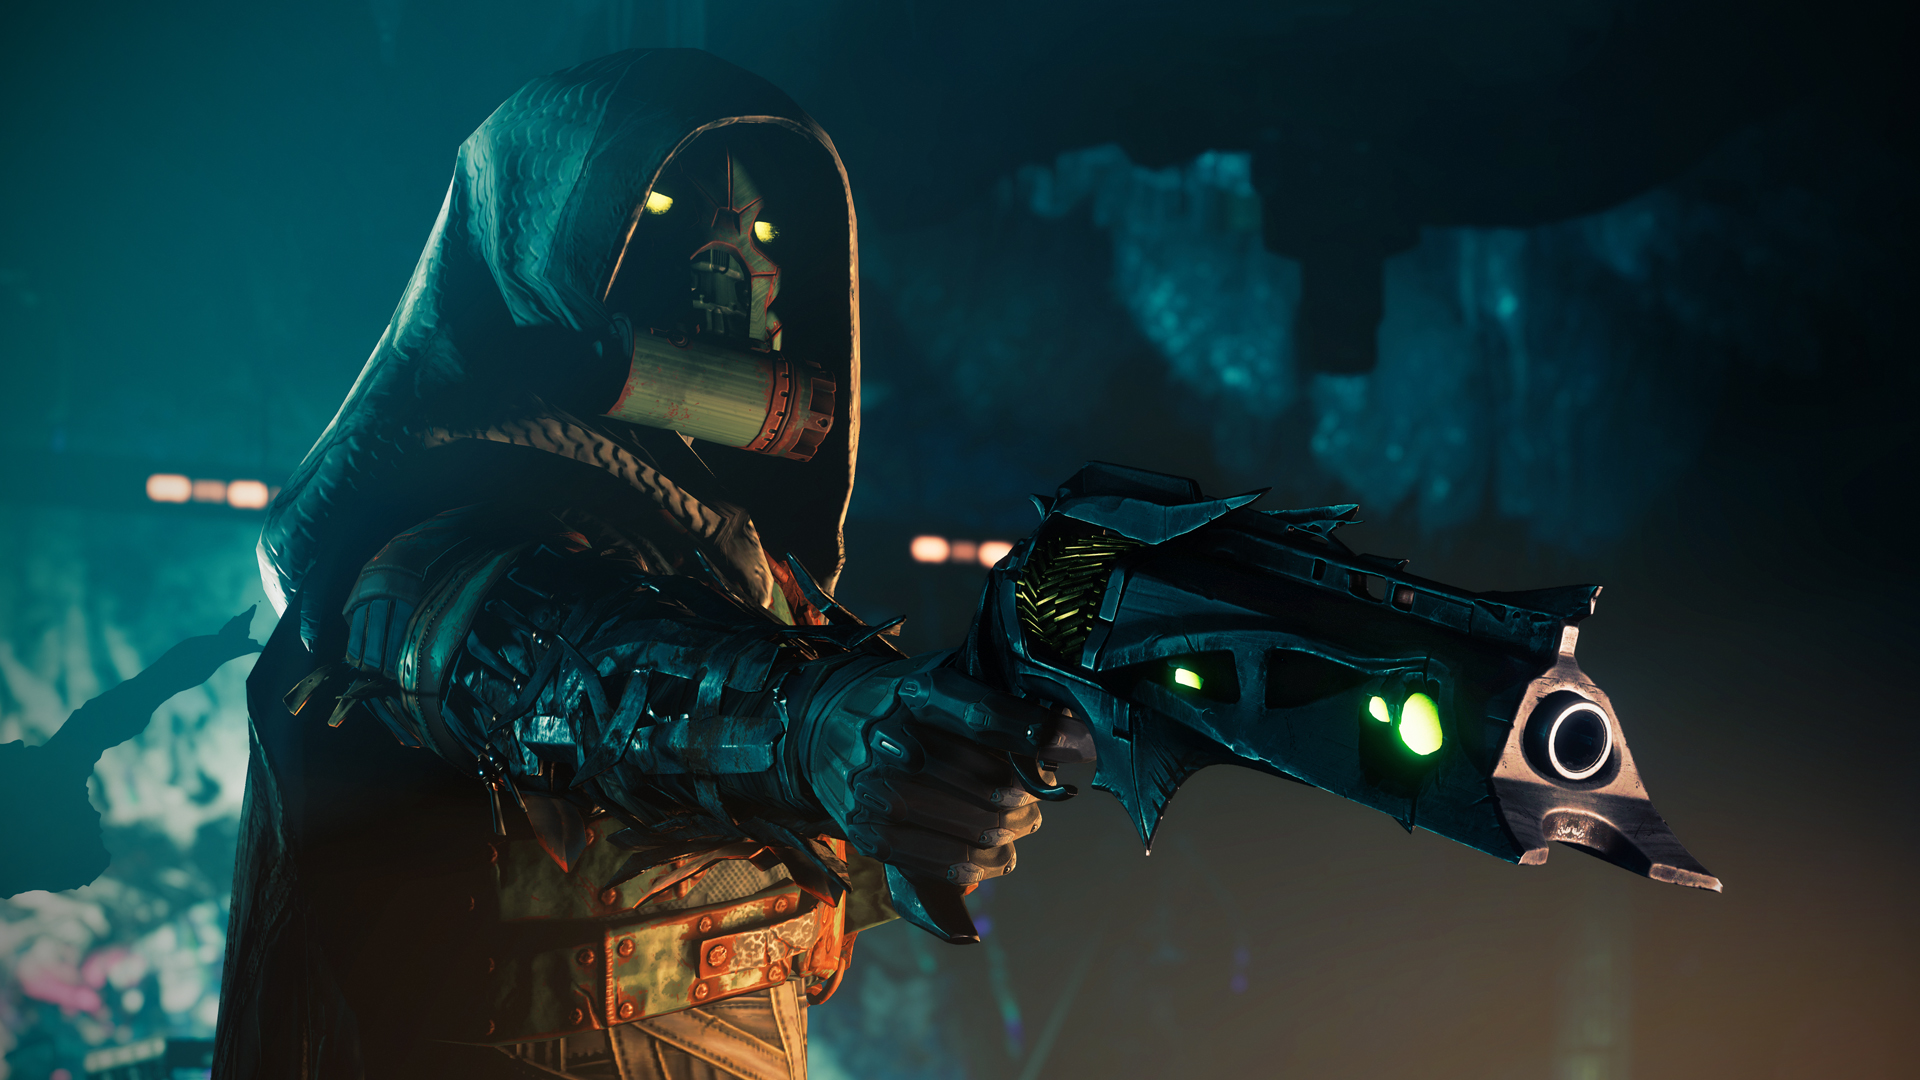 63578059e22 These Destiny 2 short stories tease a dark storyline rumored to be  connected to Destiny 3